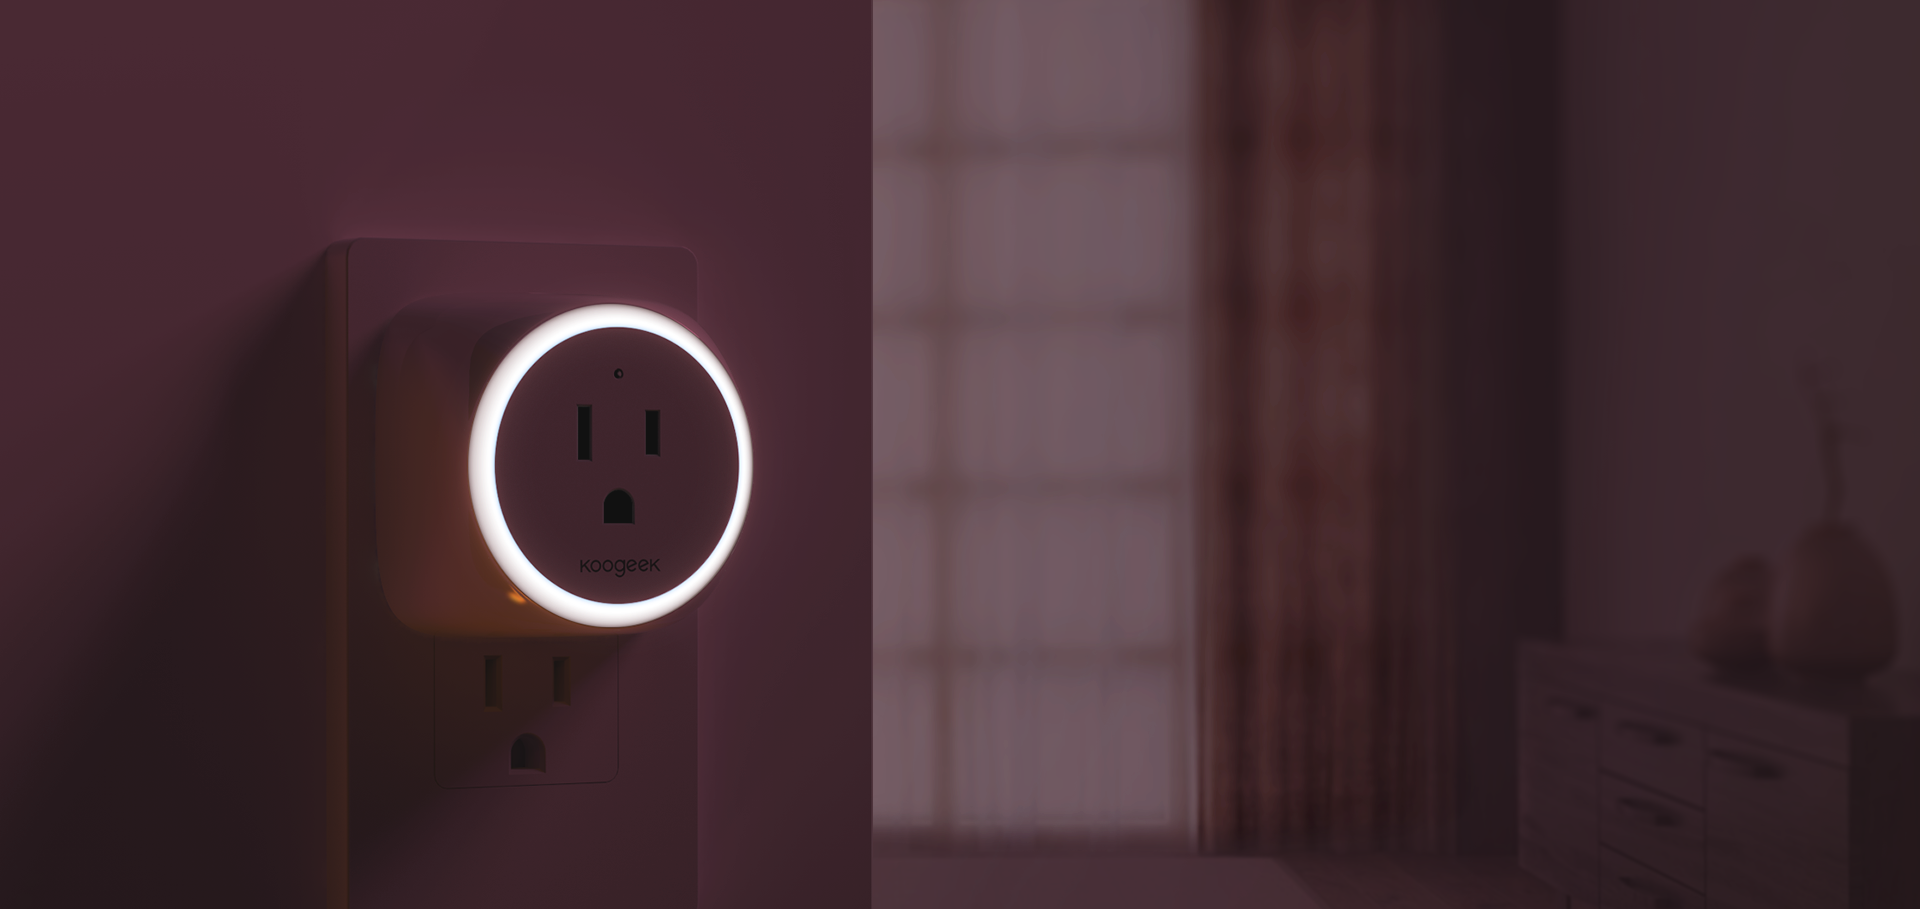 Wi Fi Enabled Improved Smart Plug Electrical And Switchceilinglightjpg The Led Night Light Is Built Into Outlet Which Also Works With Apple Homekit Amazon Alexa You Can Ask Siri Or To Turn On Off